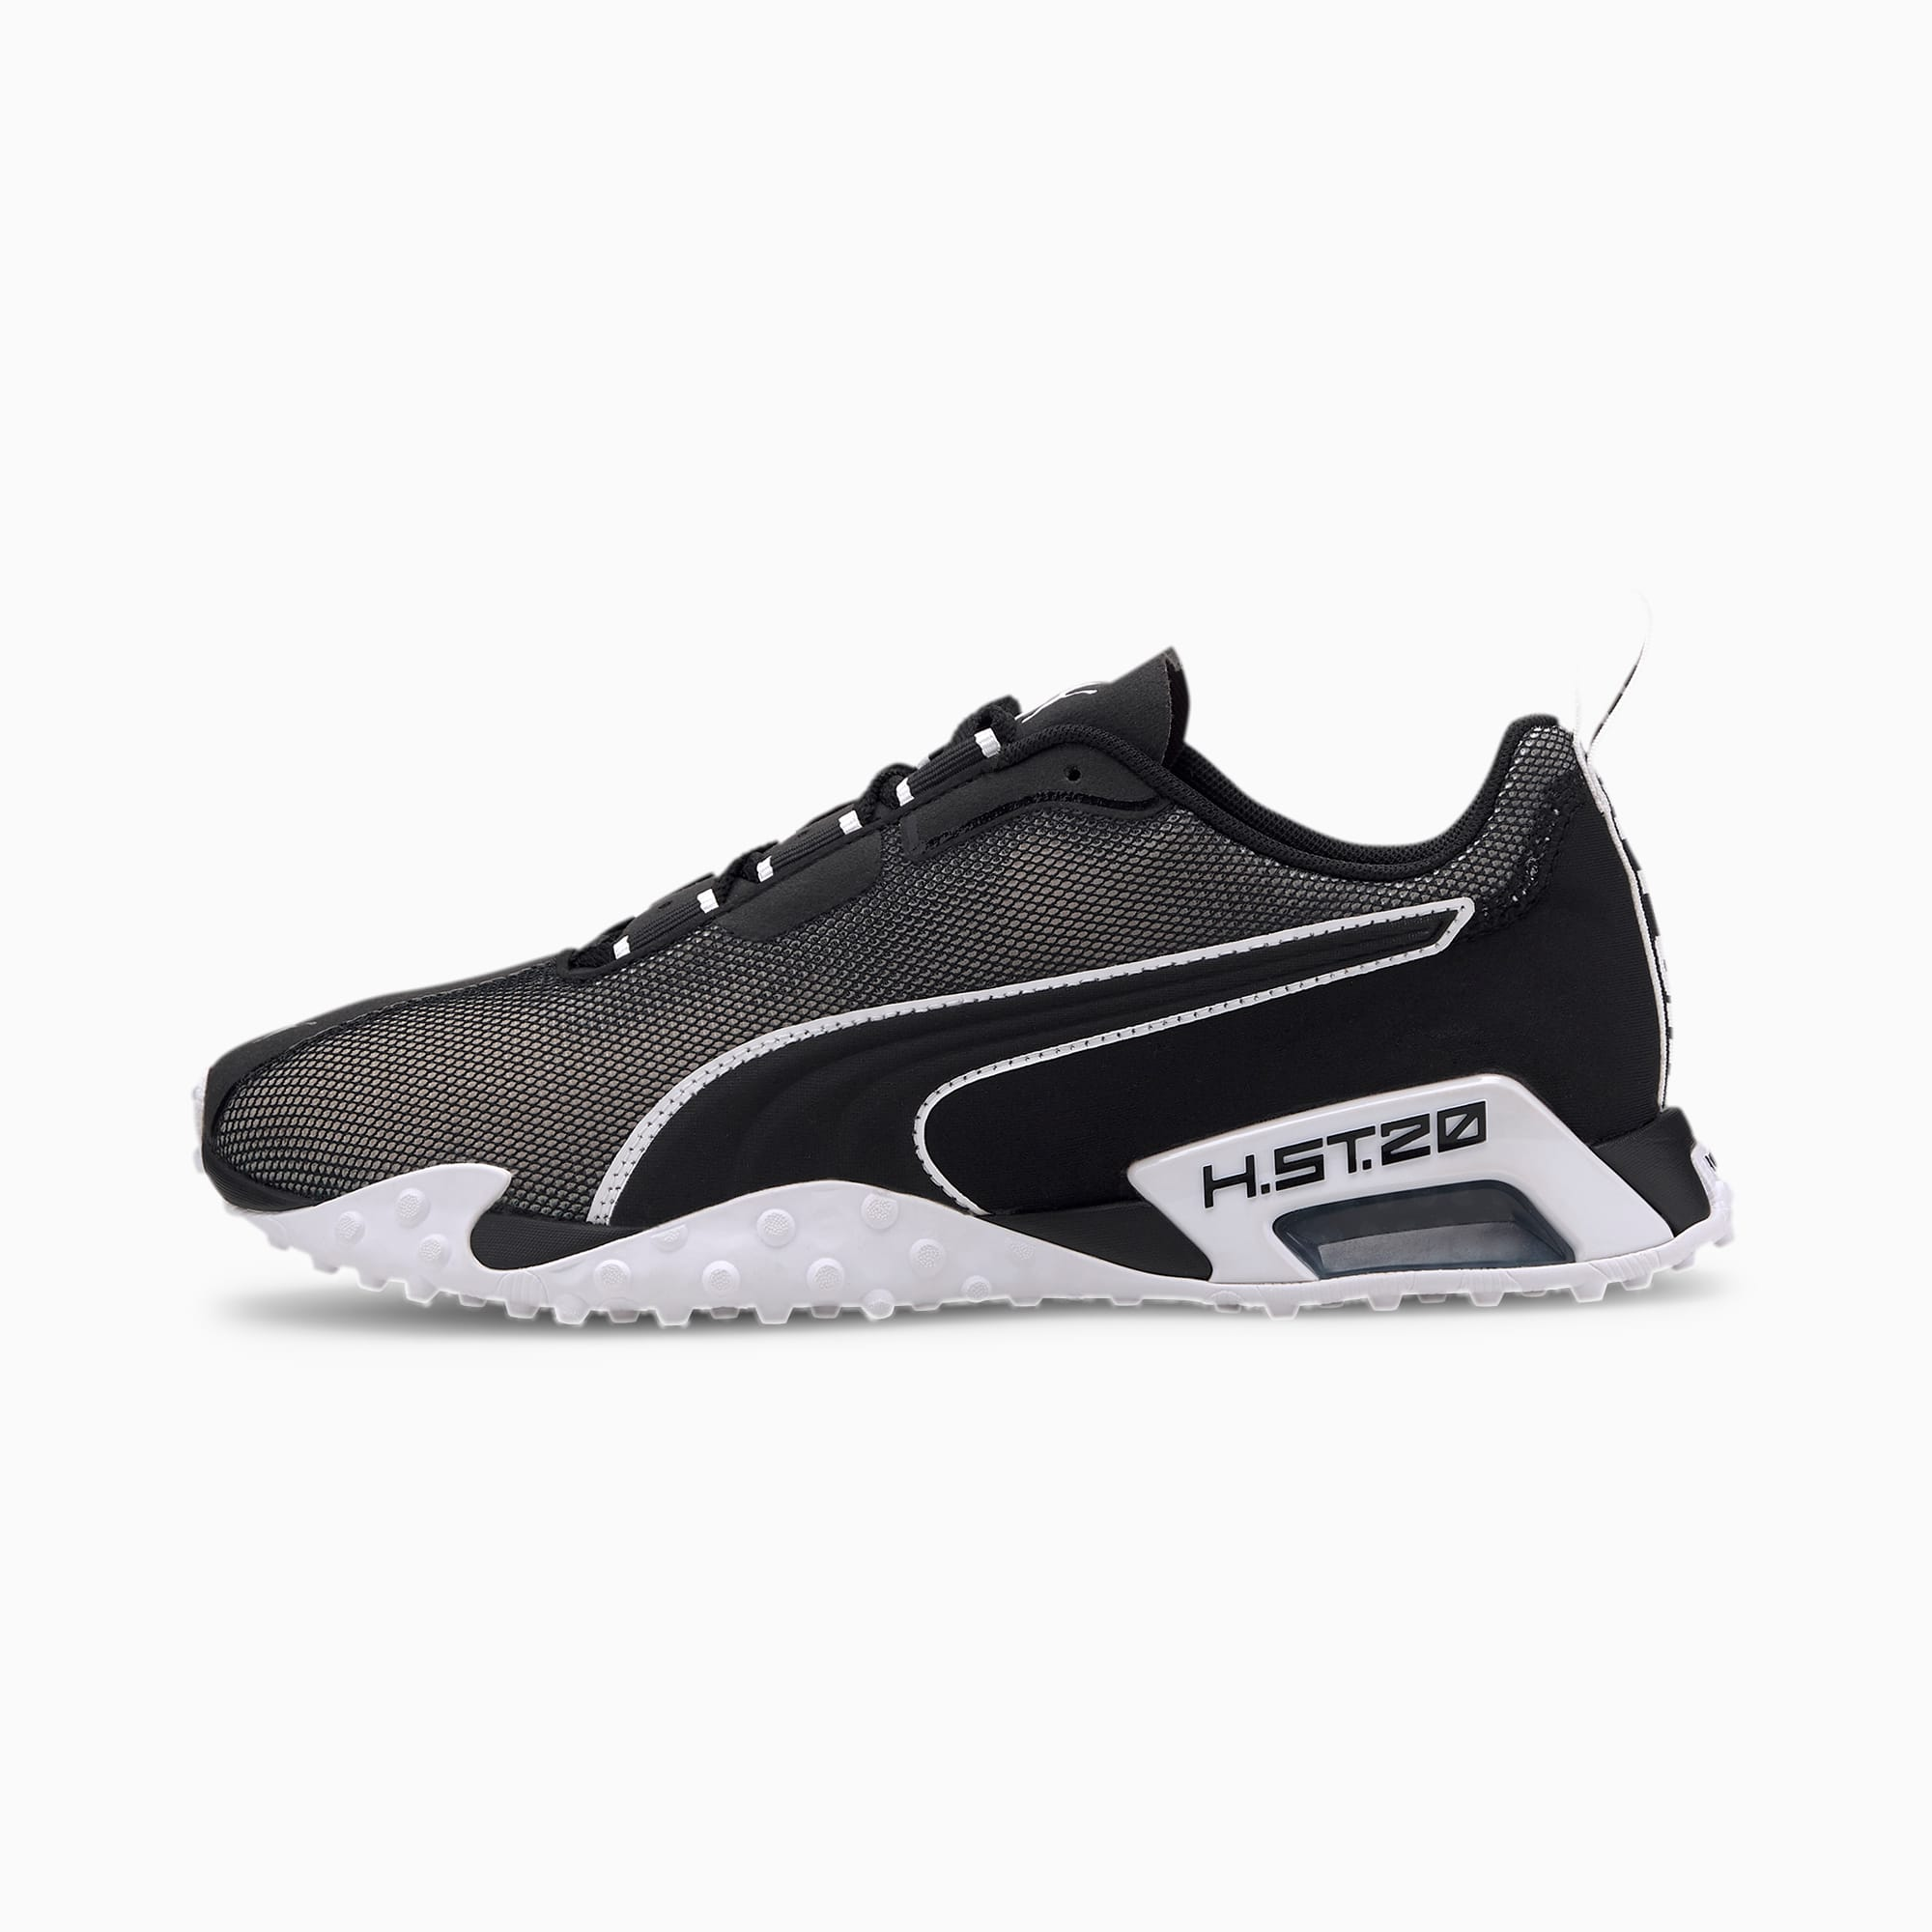 H.ST.20 Training Shoes